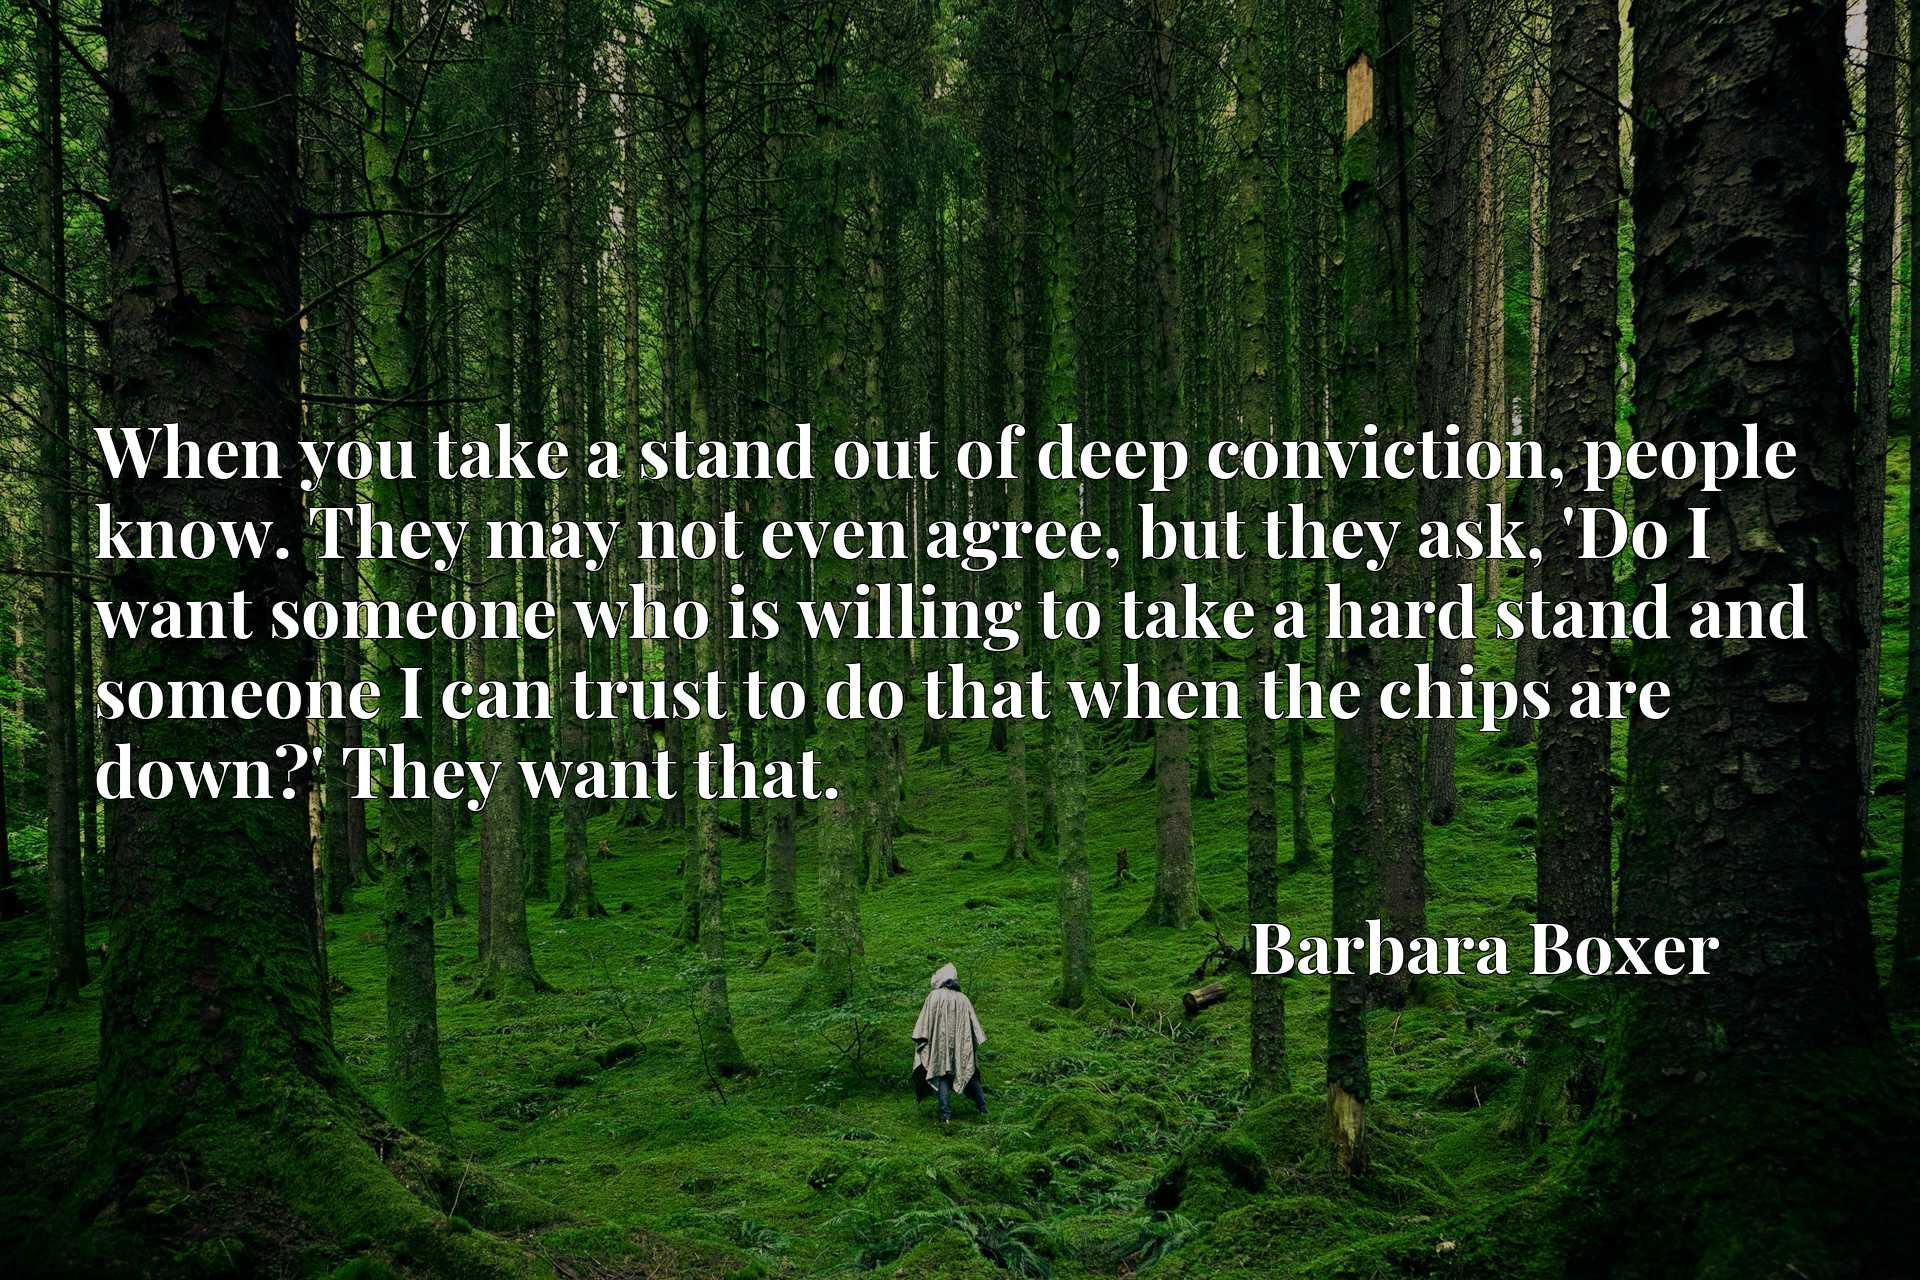 When you take a stand out of deep conviction, people know. They may not even agree, but they ask, 'Do I want someone who is willing to take a hard stand and someone I can trust to do that when the chips are down?' They want that.